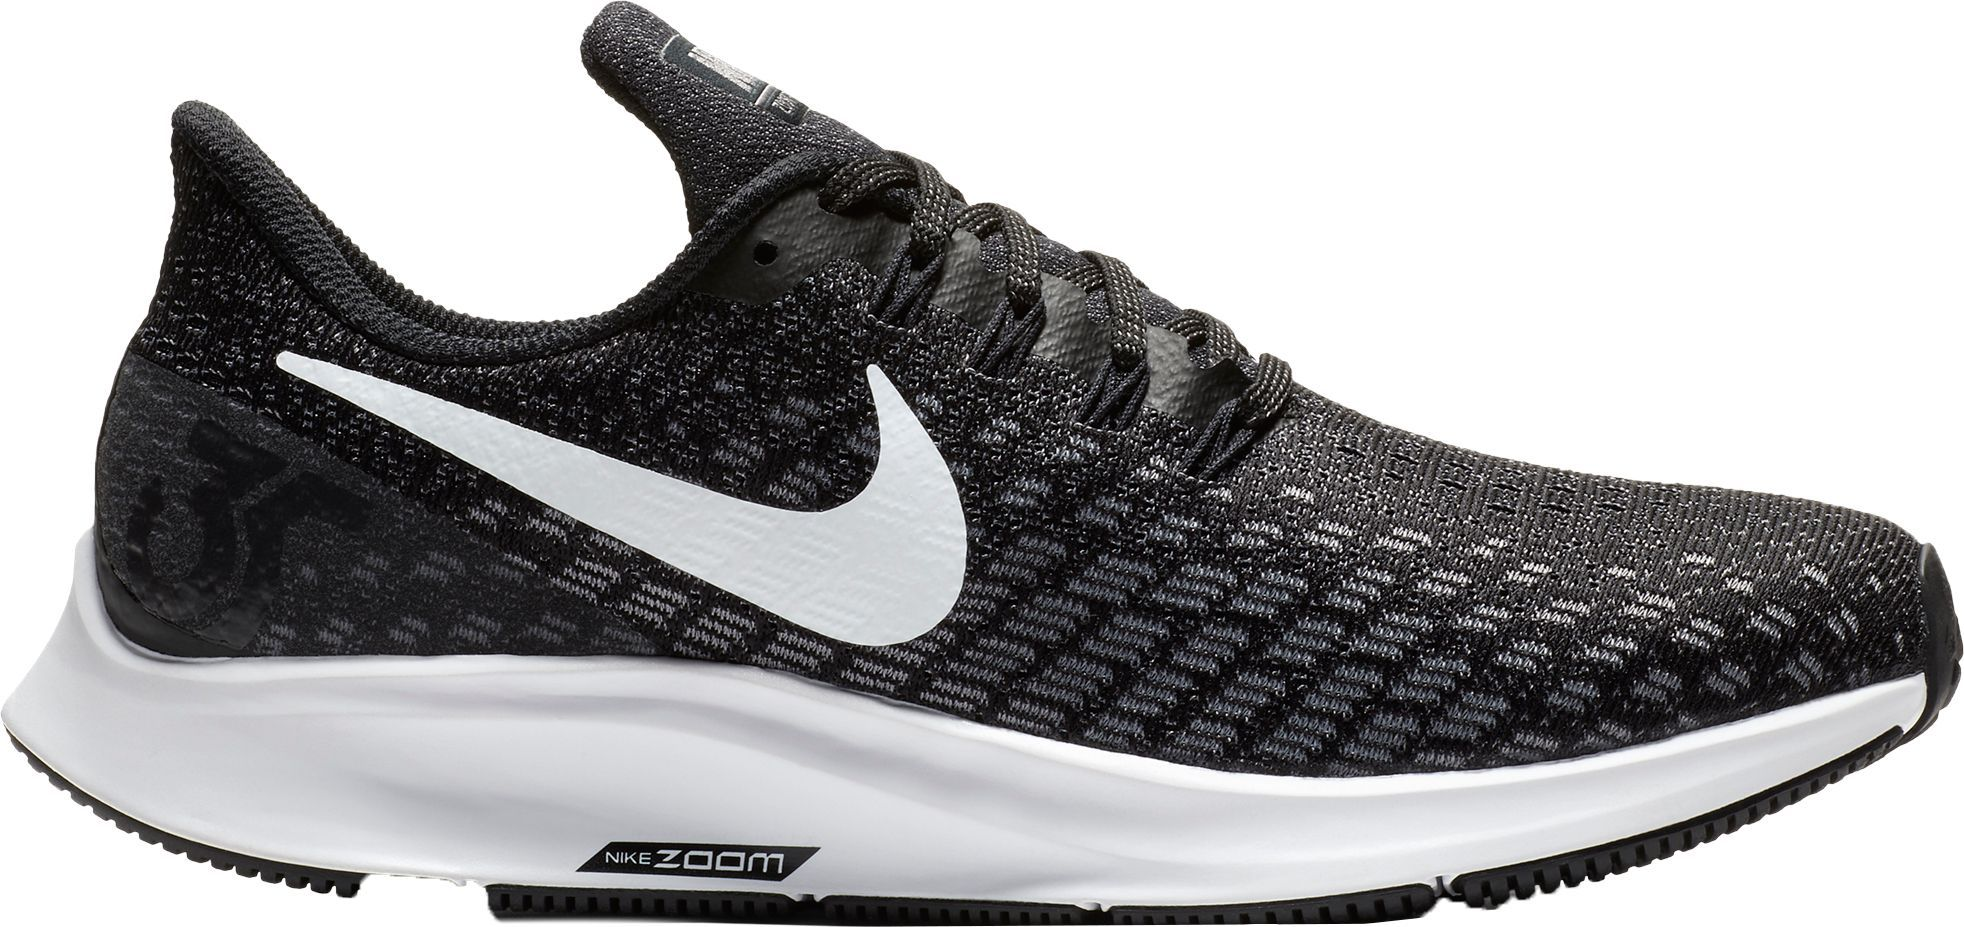 new product 96a98 38e15 Nike Women s Air Zoom Pegasus 35 Running Shoes, Size  9.0, Black